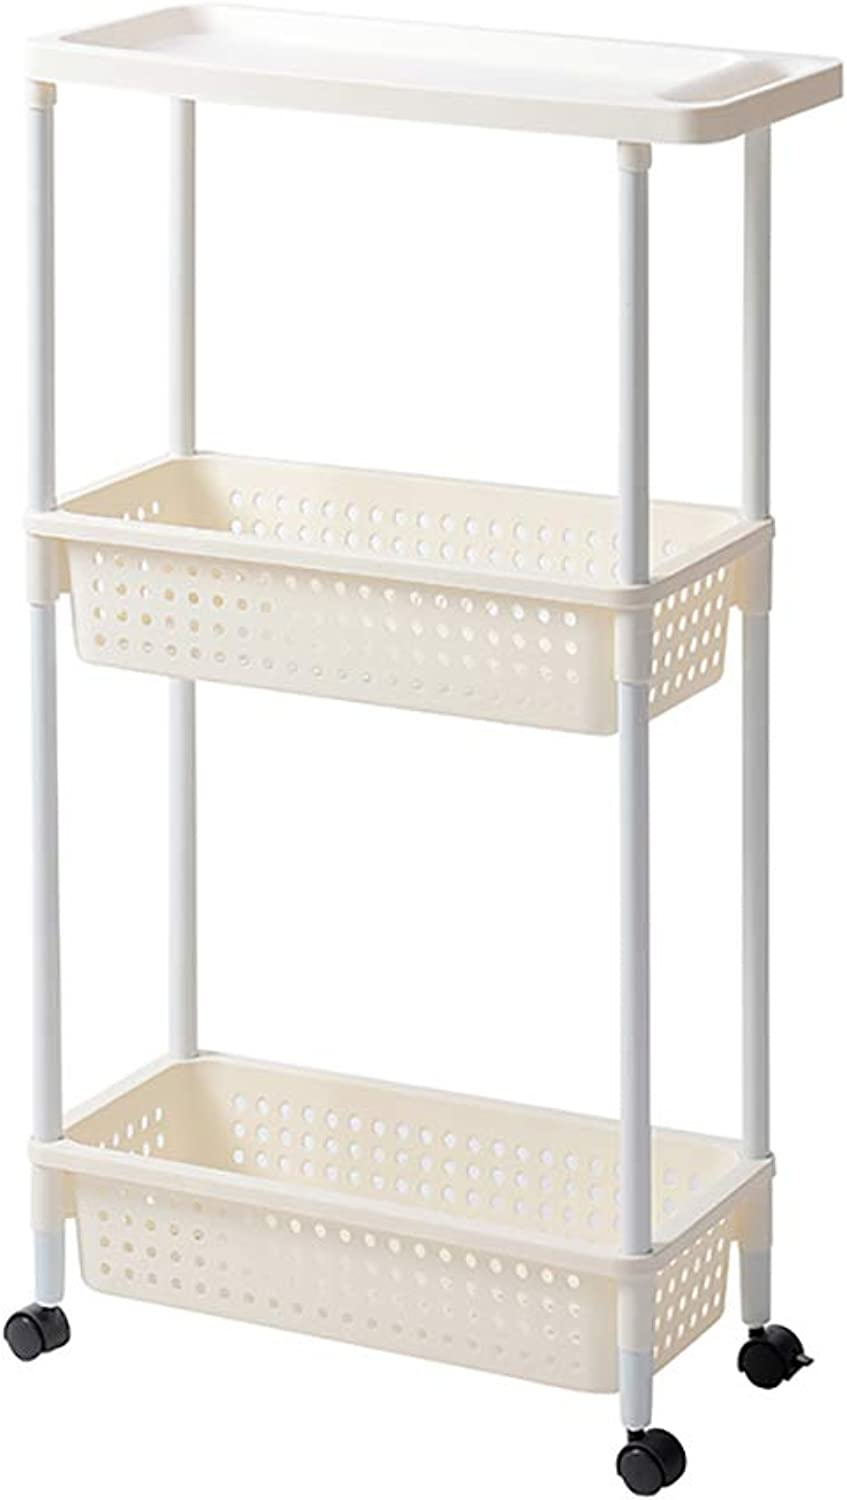 3 4 Tier Kitchen Storage Trolley with Wheels Plastic Fruit Vegetable Rack for Bathroom Multifunction Organizing (Size   50  21  86cm)